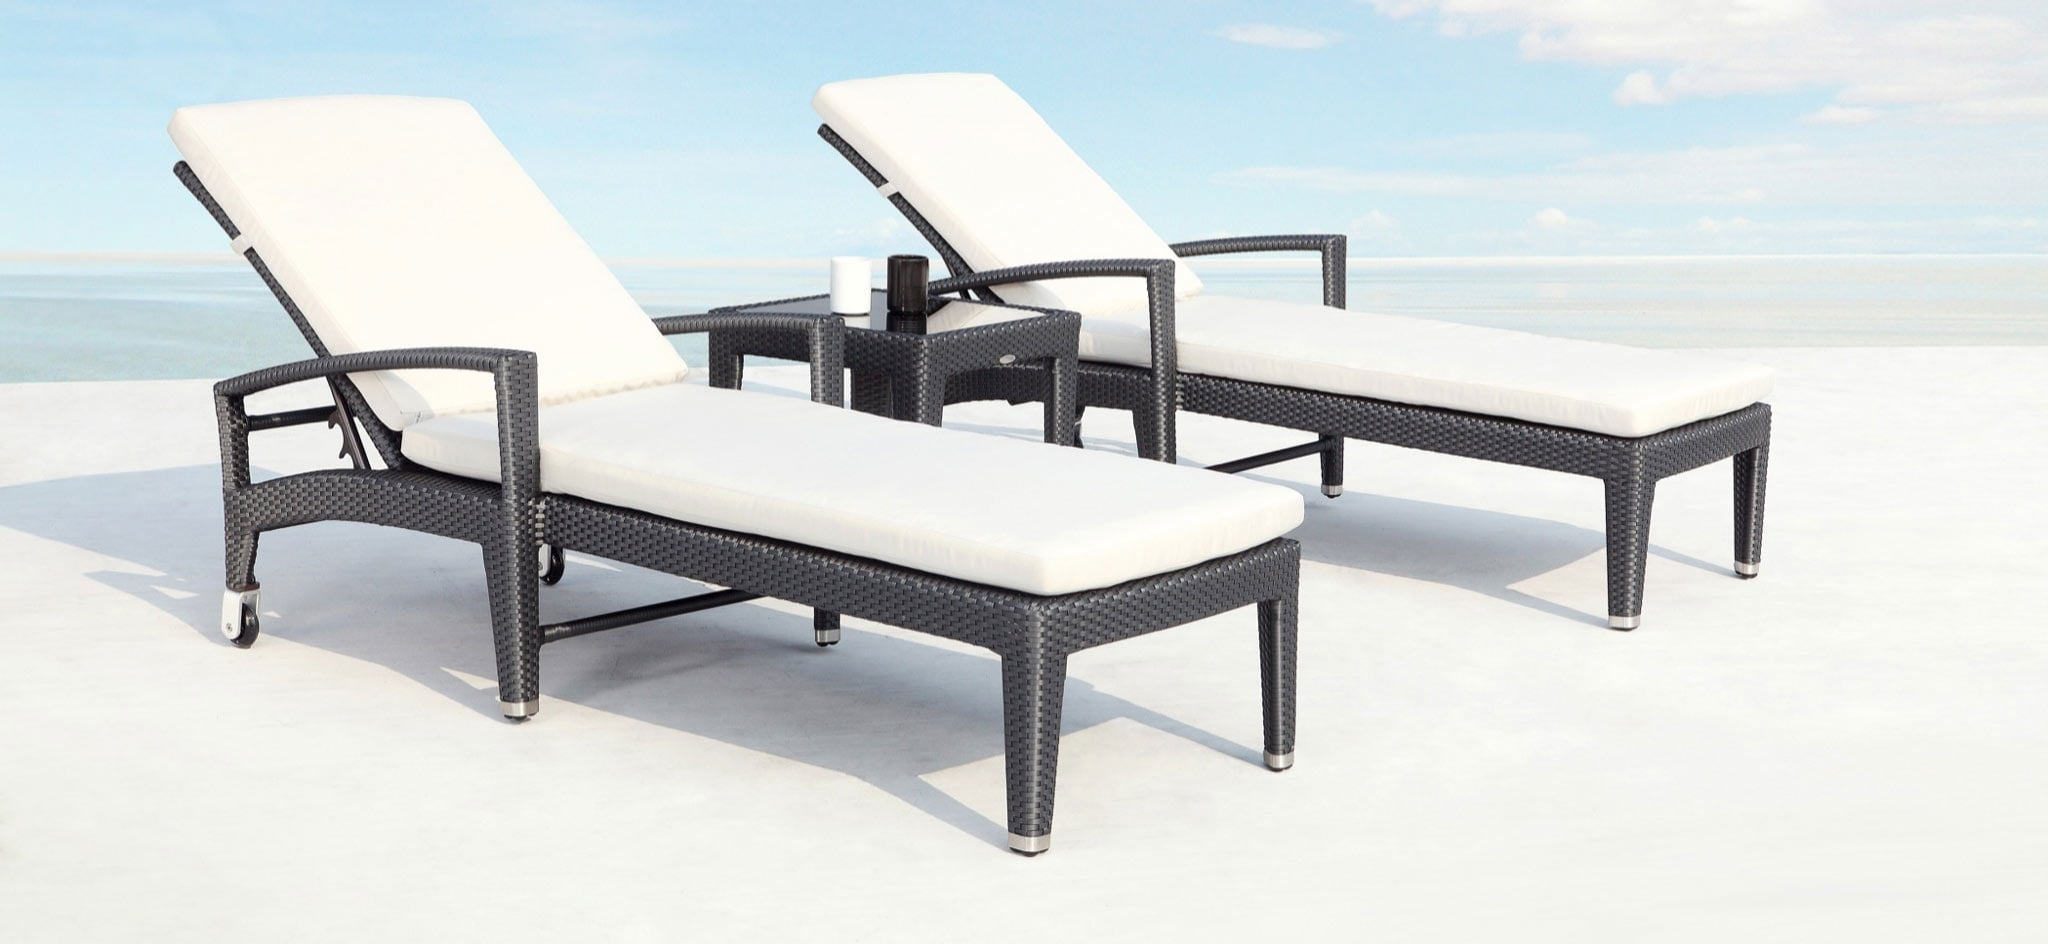 Laiva Sun Loungers OceanWeave Outdoor Furniture NZ : Laiva Sun Loungers 22048x944acfcropped from www.oceanweavefurniture.co.nz size 2048 x 944 jpeg 132kB